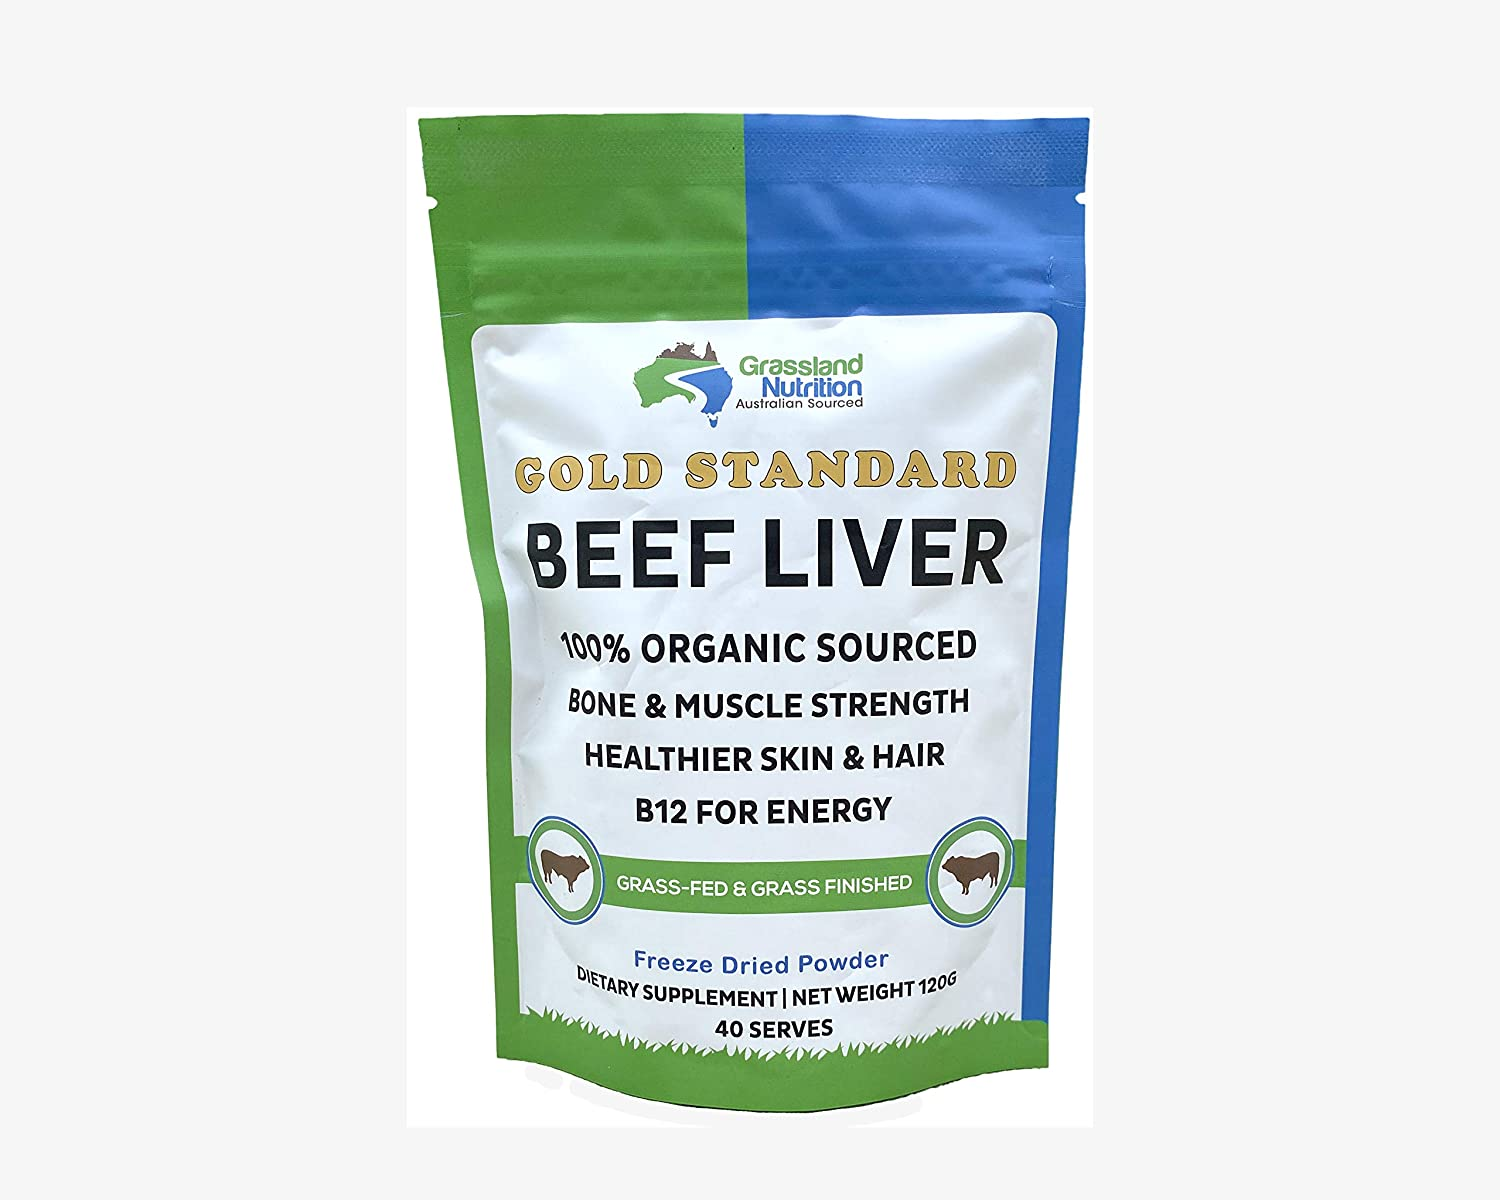 Grassland Nutrition Organic Grass Fed Selling and selling Liver Beef Freeze Indefinitely Dried